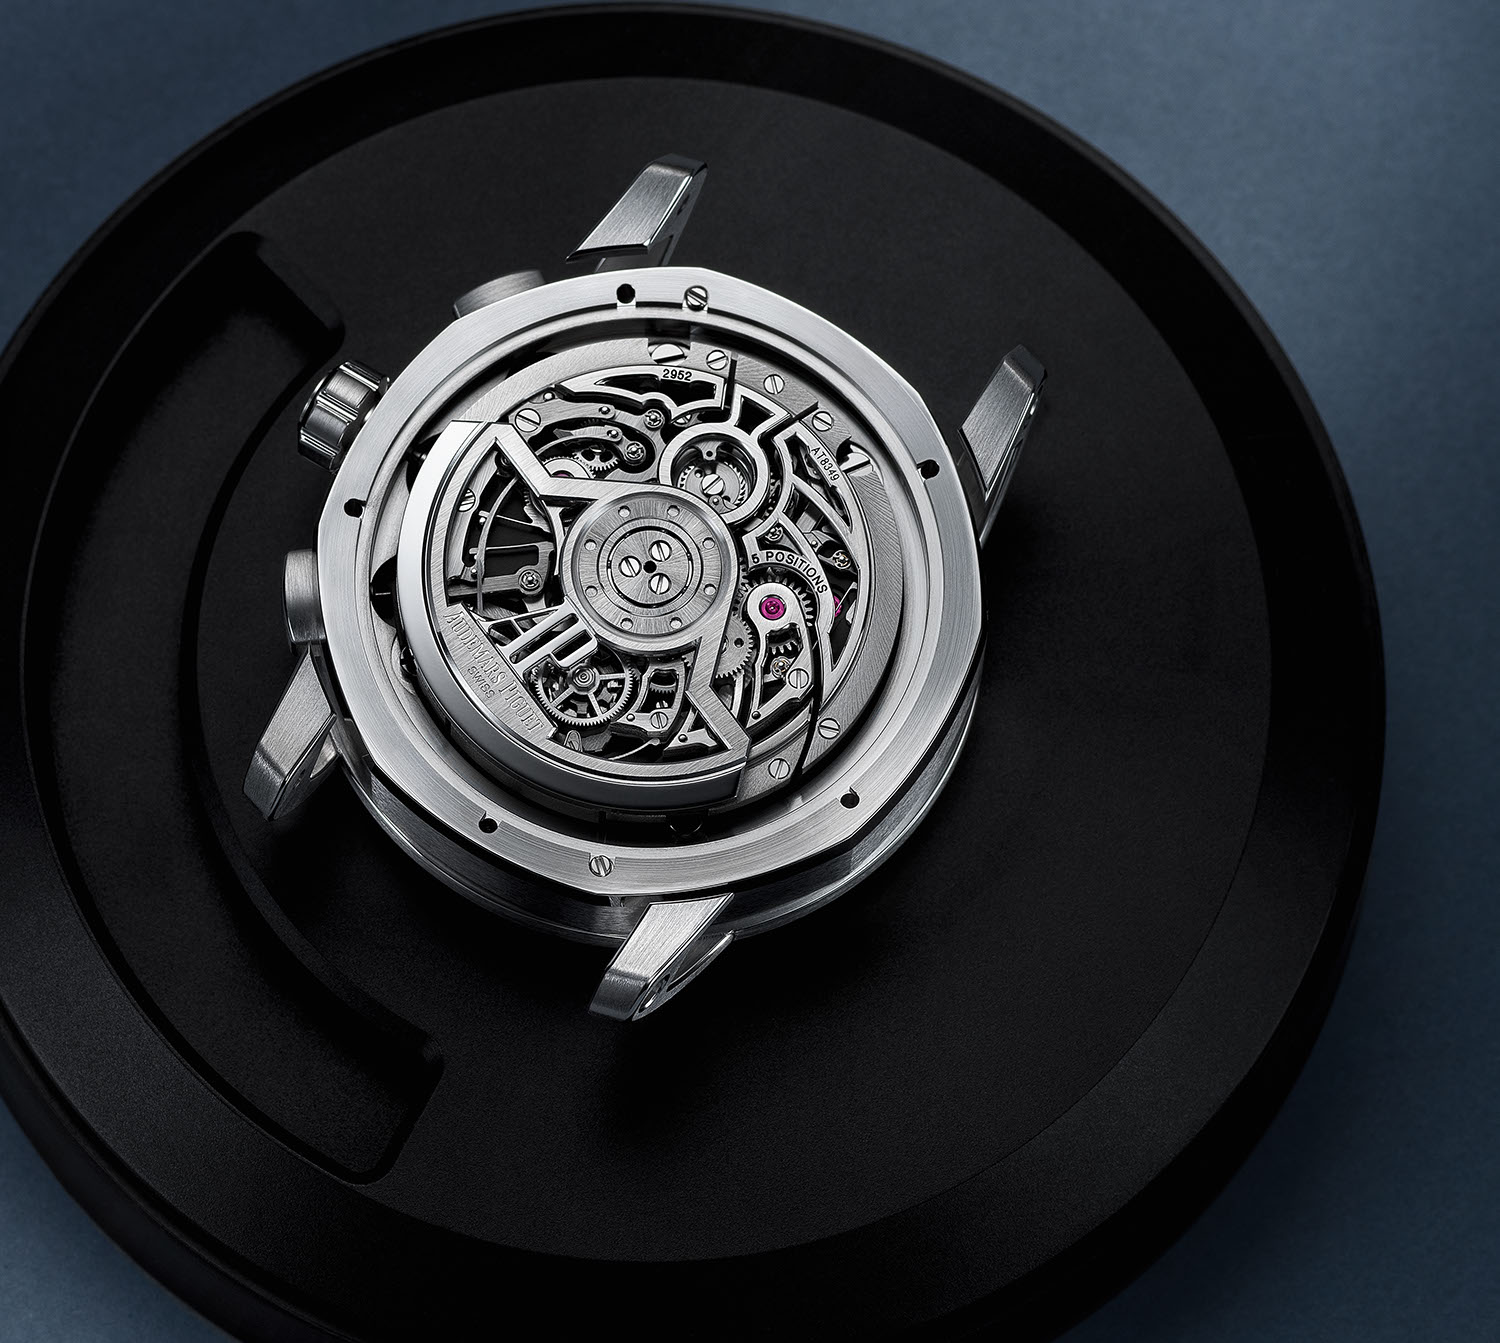 The Caliber 2952 as seen contained within the Code 11.59 by Audemars Piguet Selfwinding Flying Tourbillon Chronograph